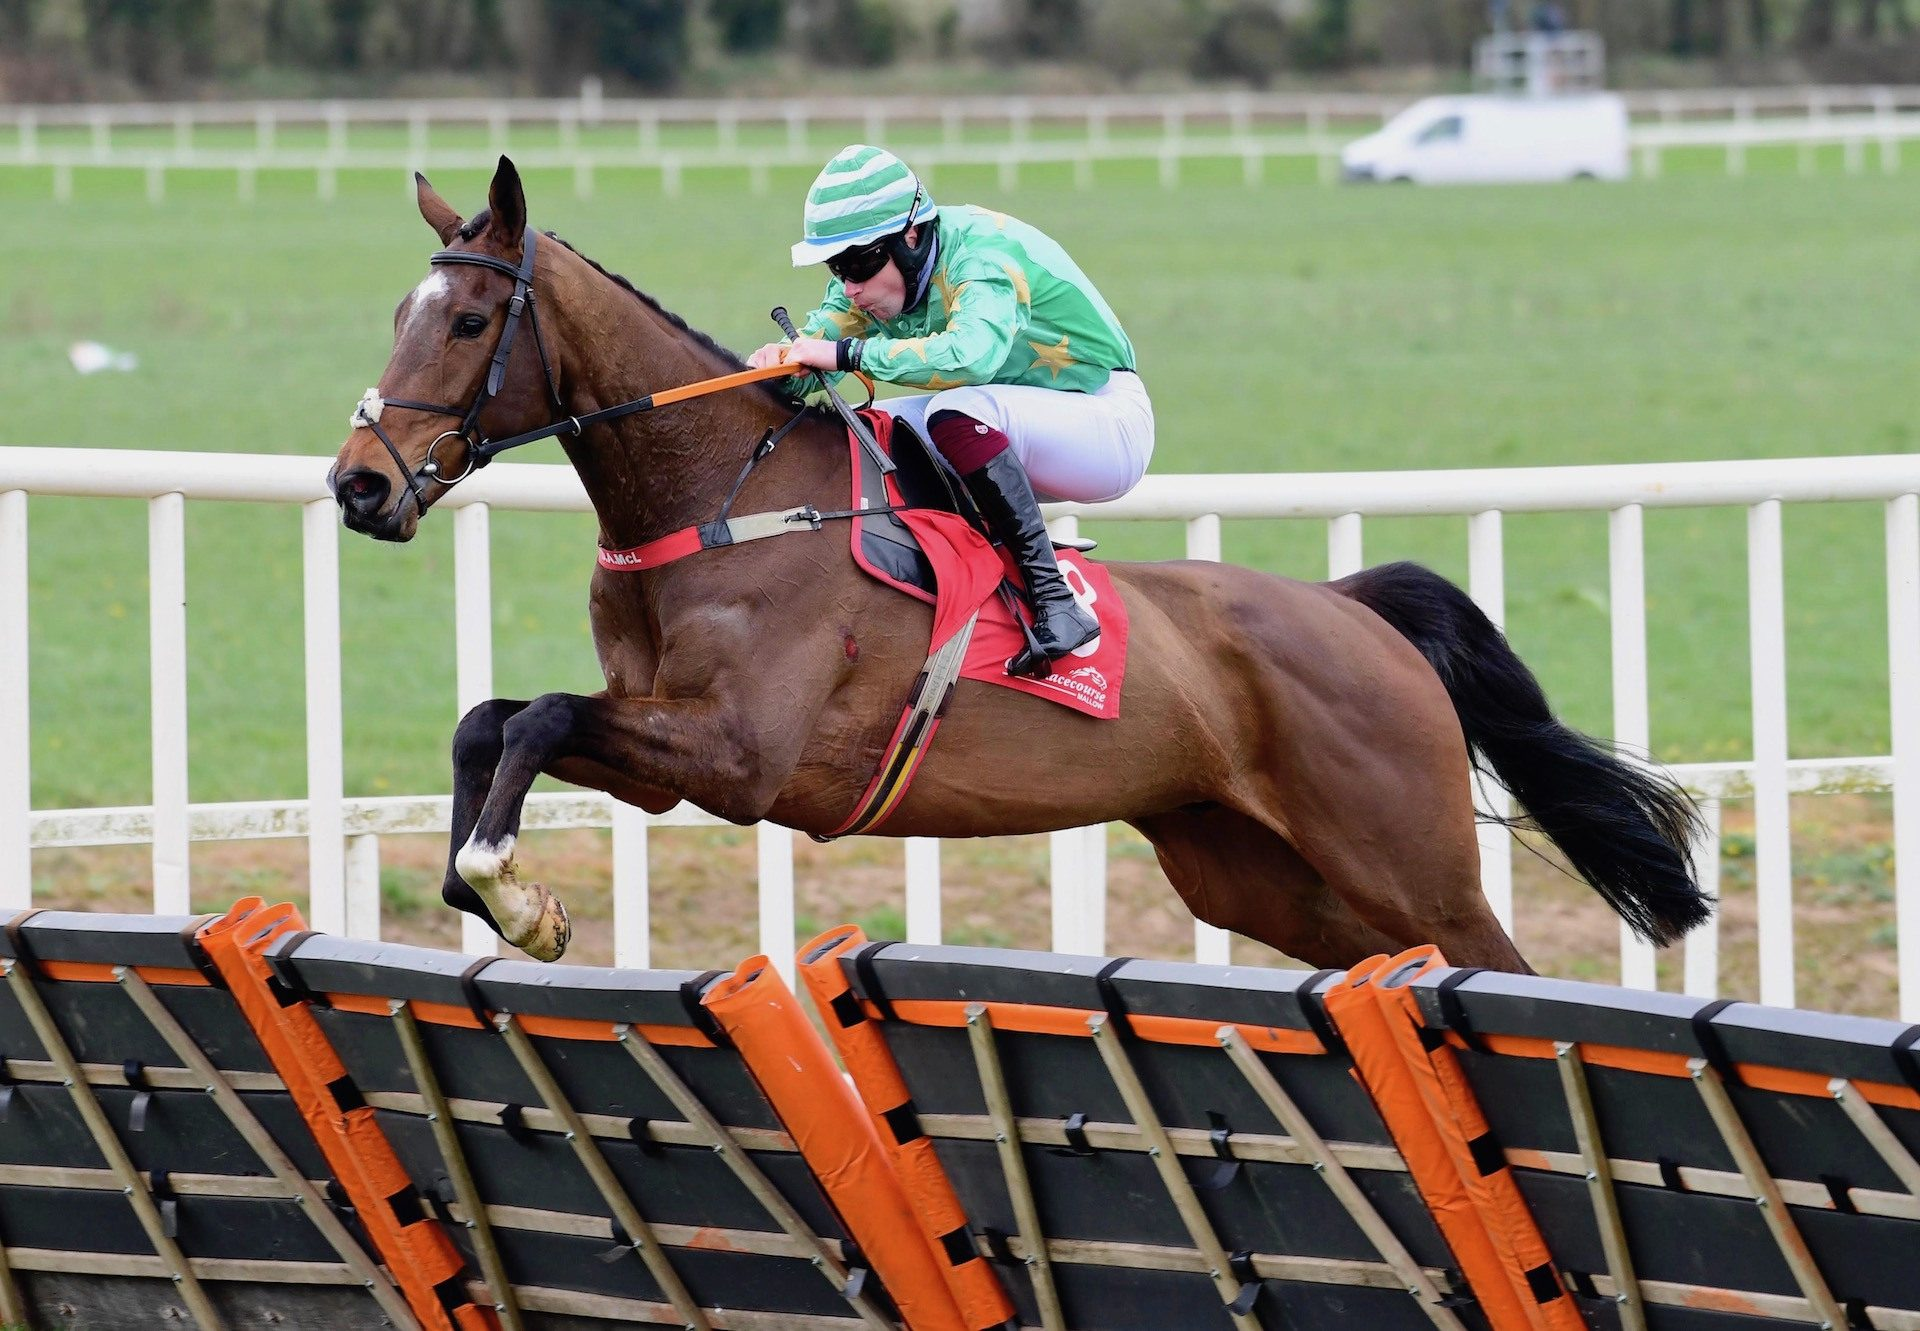 Mr Josiey Wales (Milan) Impresses In A Maiden Hurdle At Cork